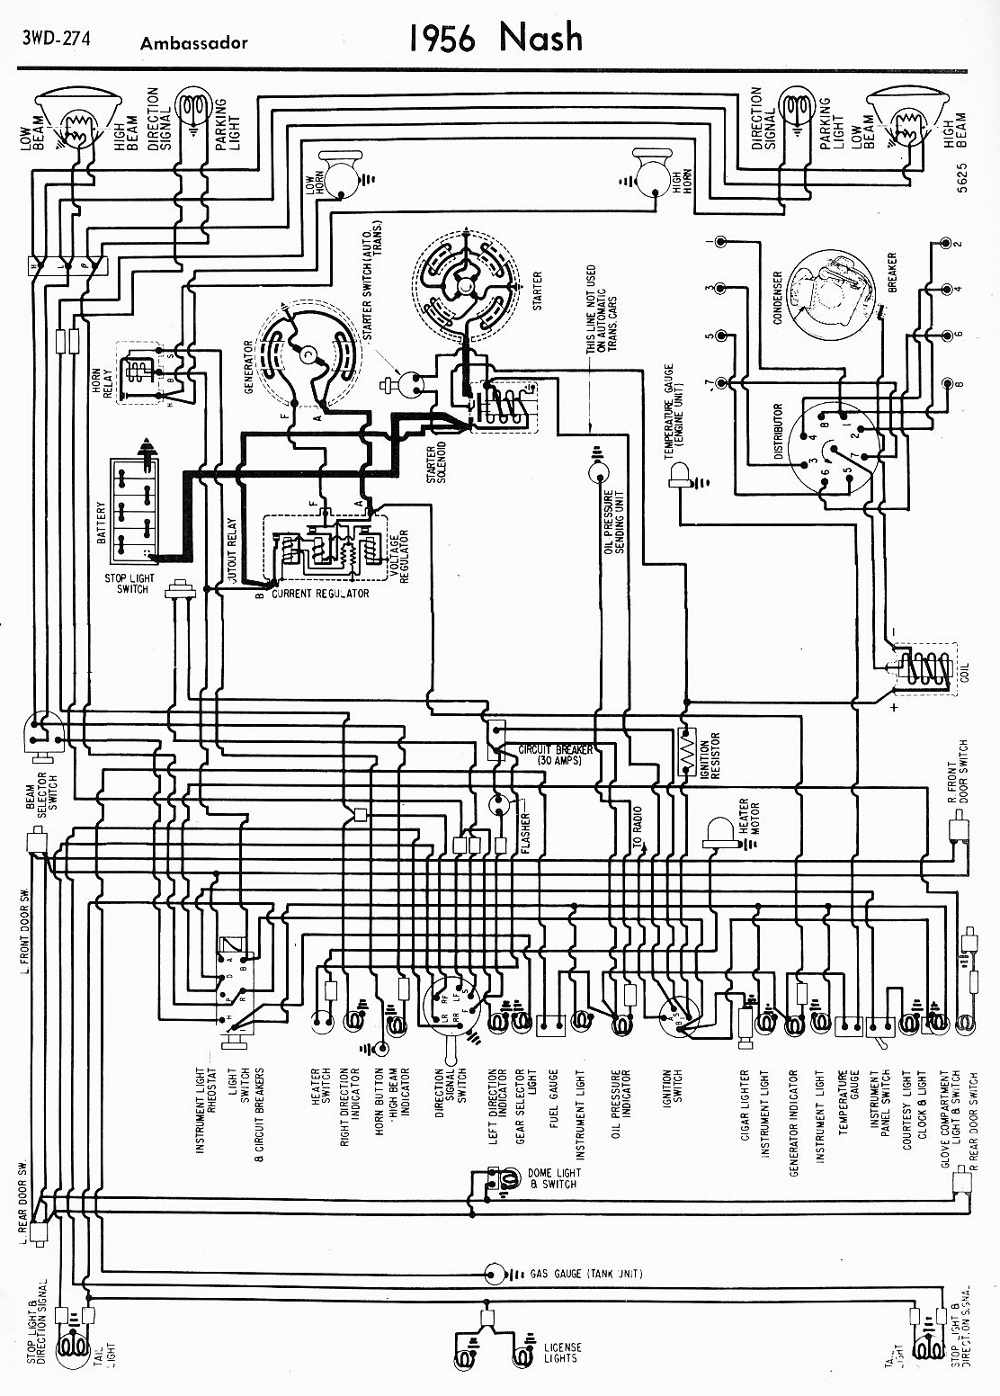 Wires in addition Kawasaki Klx250 Electrical Wiring System And Cable Color Code moreover Electrical Plugs And Electrical Sockets besides Oldsmobileregency Wiring Diagram Ccr also Oliver 550 Model 122881519 Wiring Diagram. on klr 650 ignition switch